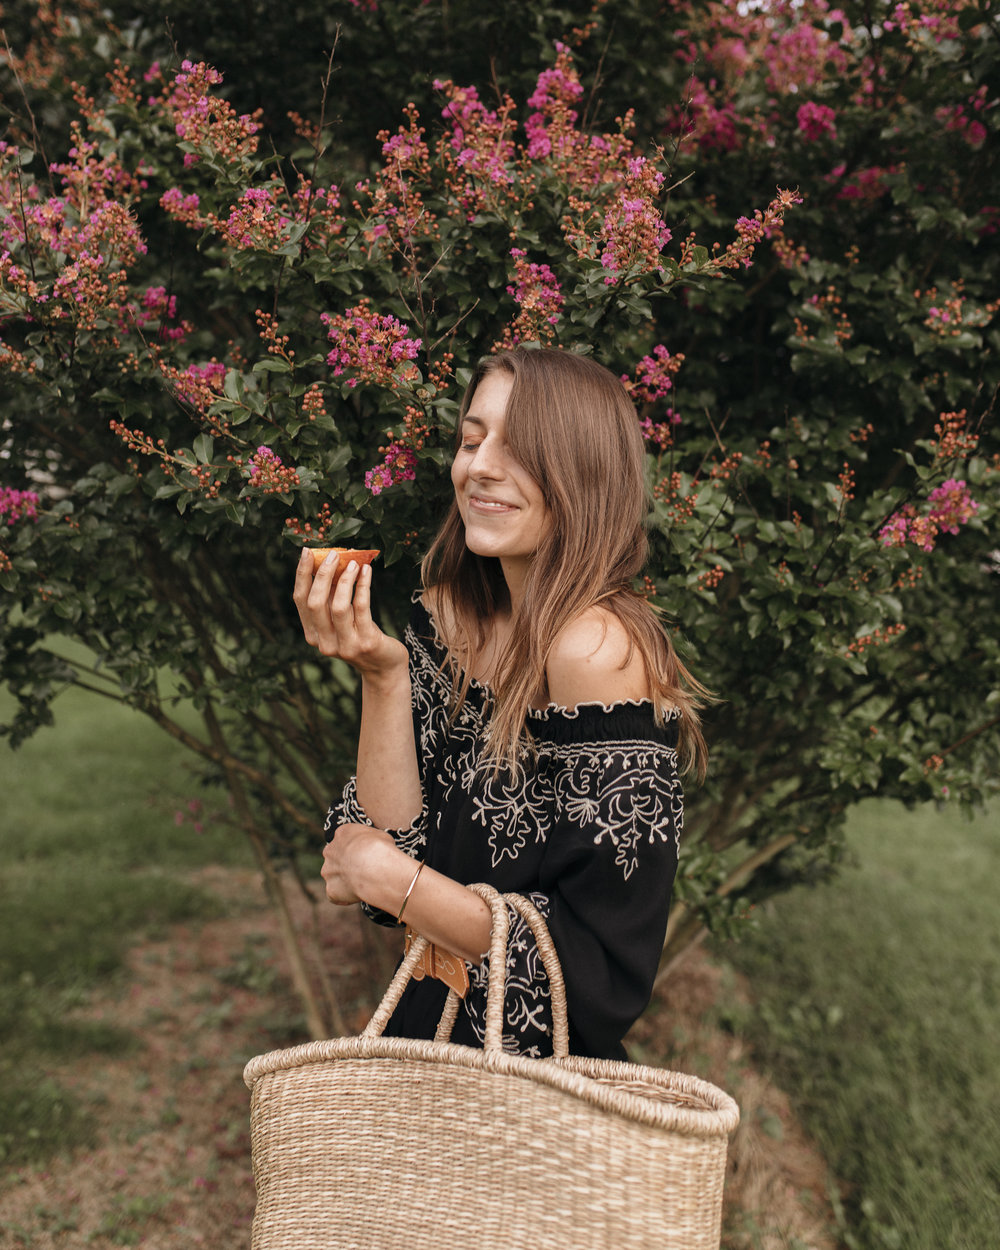 Eating a peach with a big woven handbag, Emily smiles as she incorporates habits that brighten her days